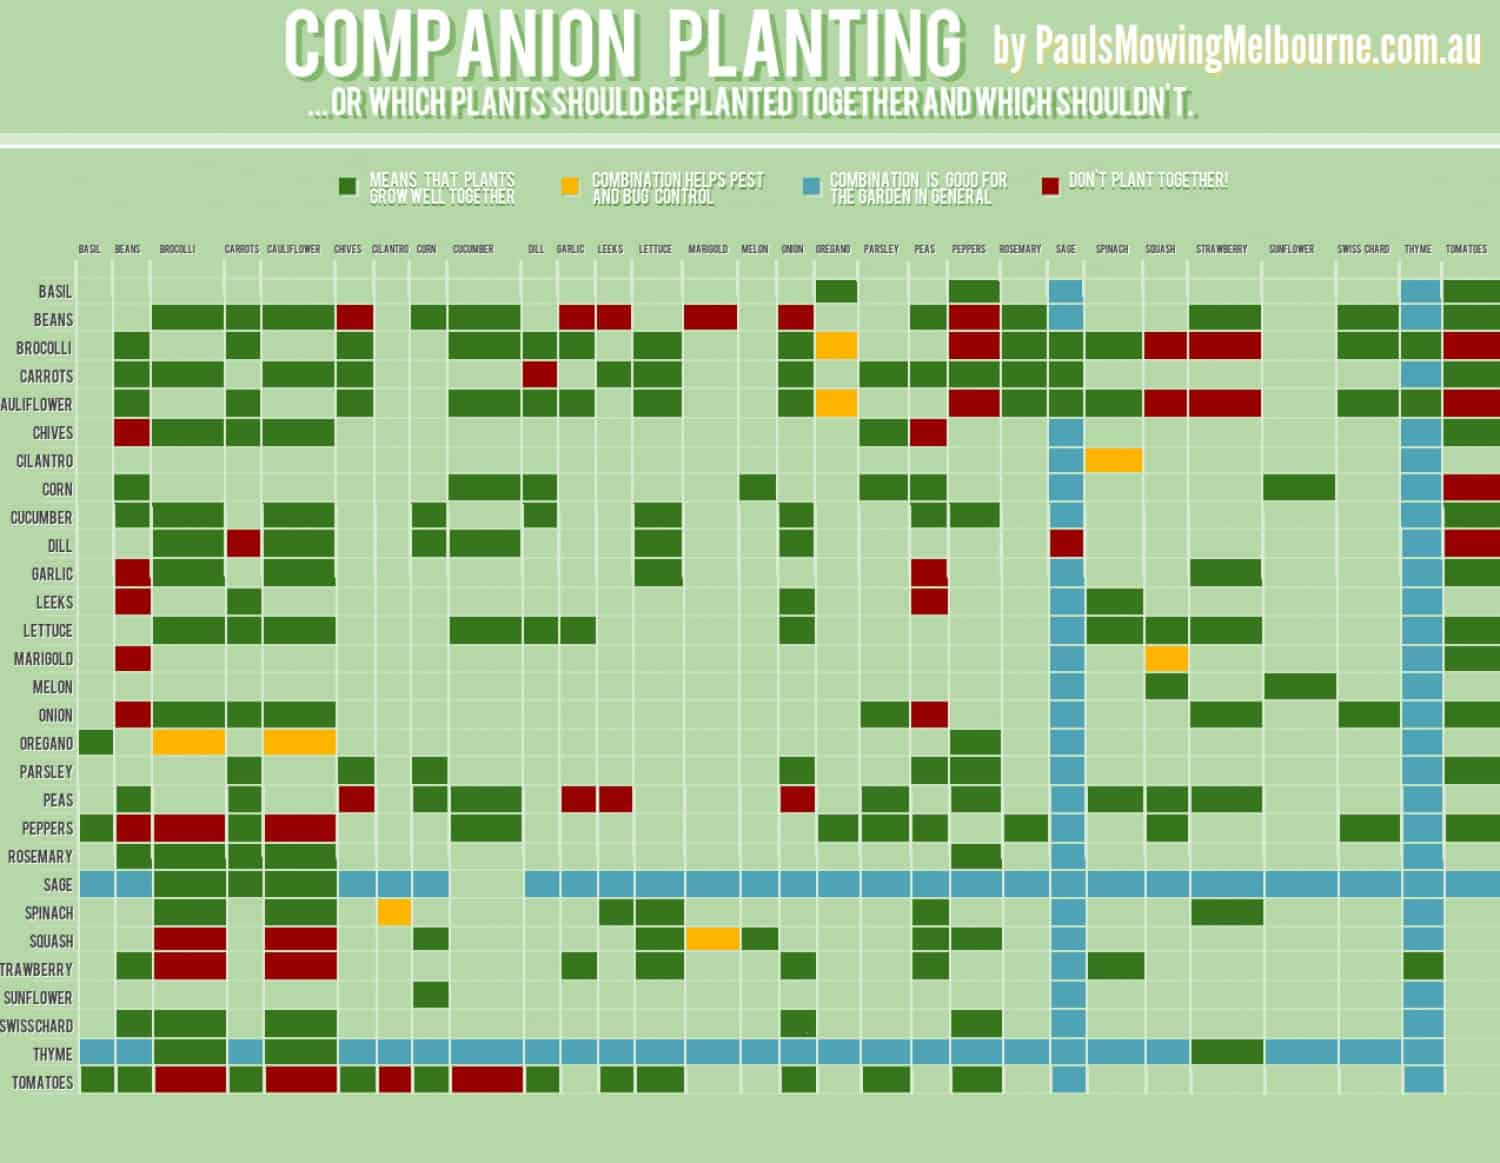 Companion planting infographic daily infographic - Companion planting ...